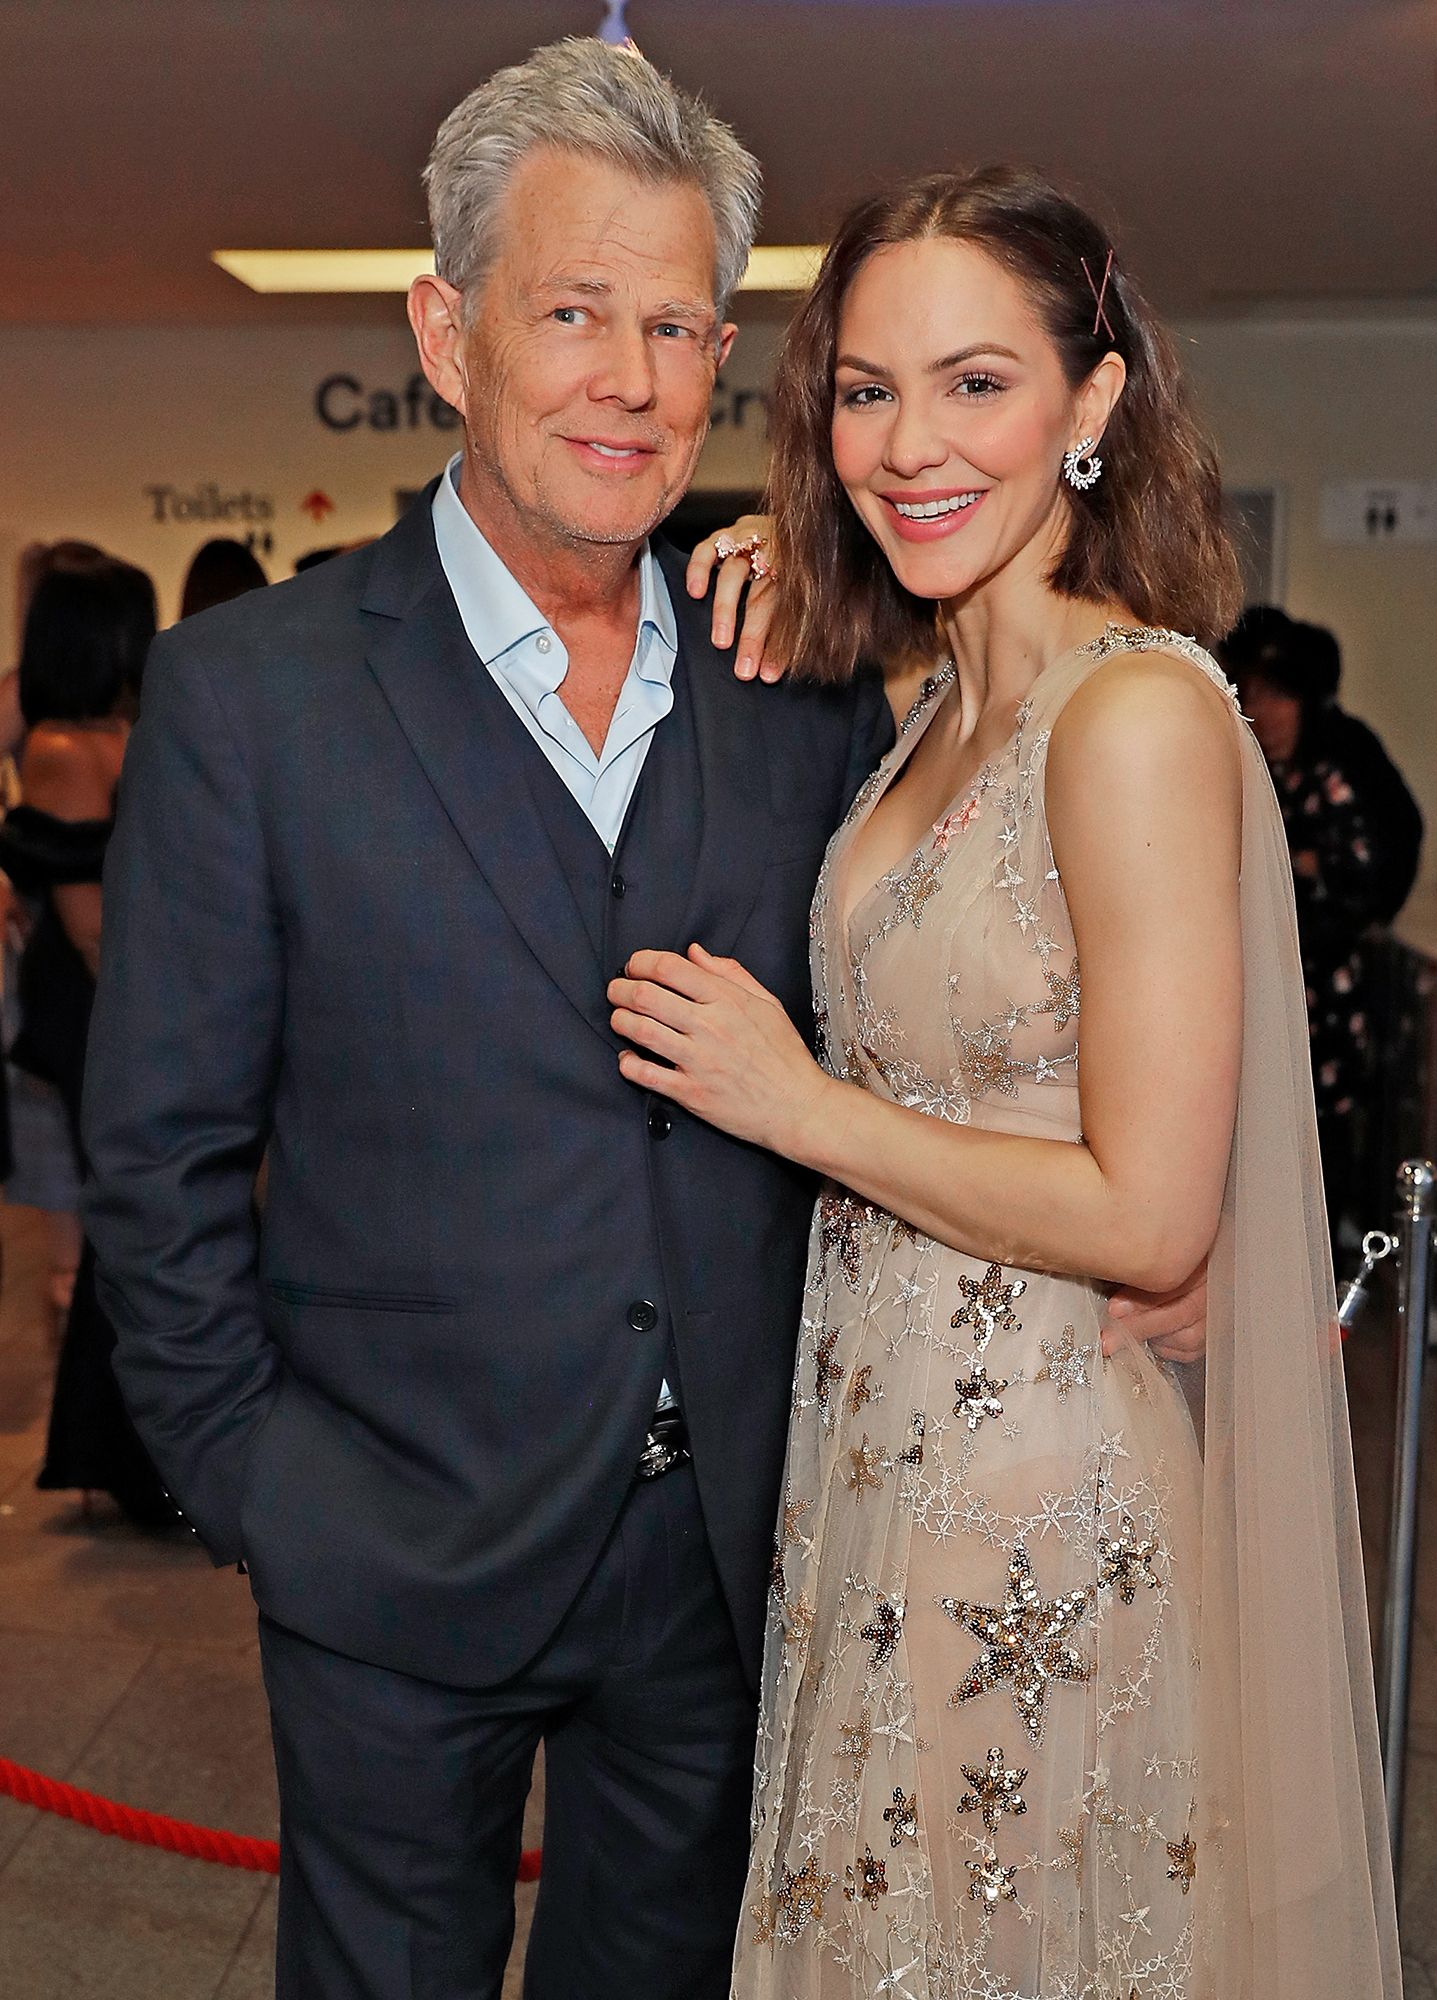 Katharine Mcphee And David Foster Marry In London Details The Fosters Katharine Mcphee London Wedding